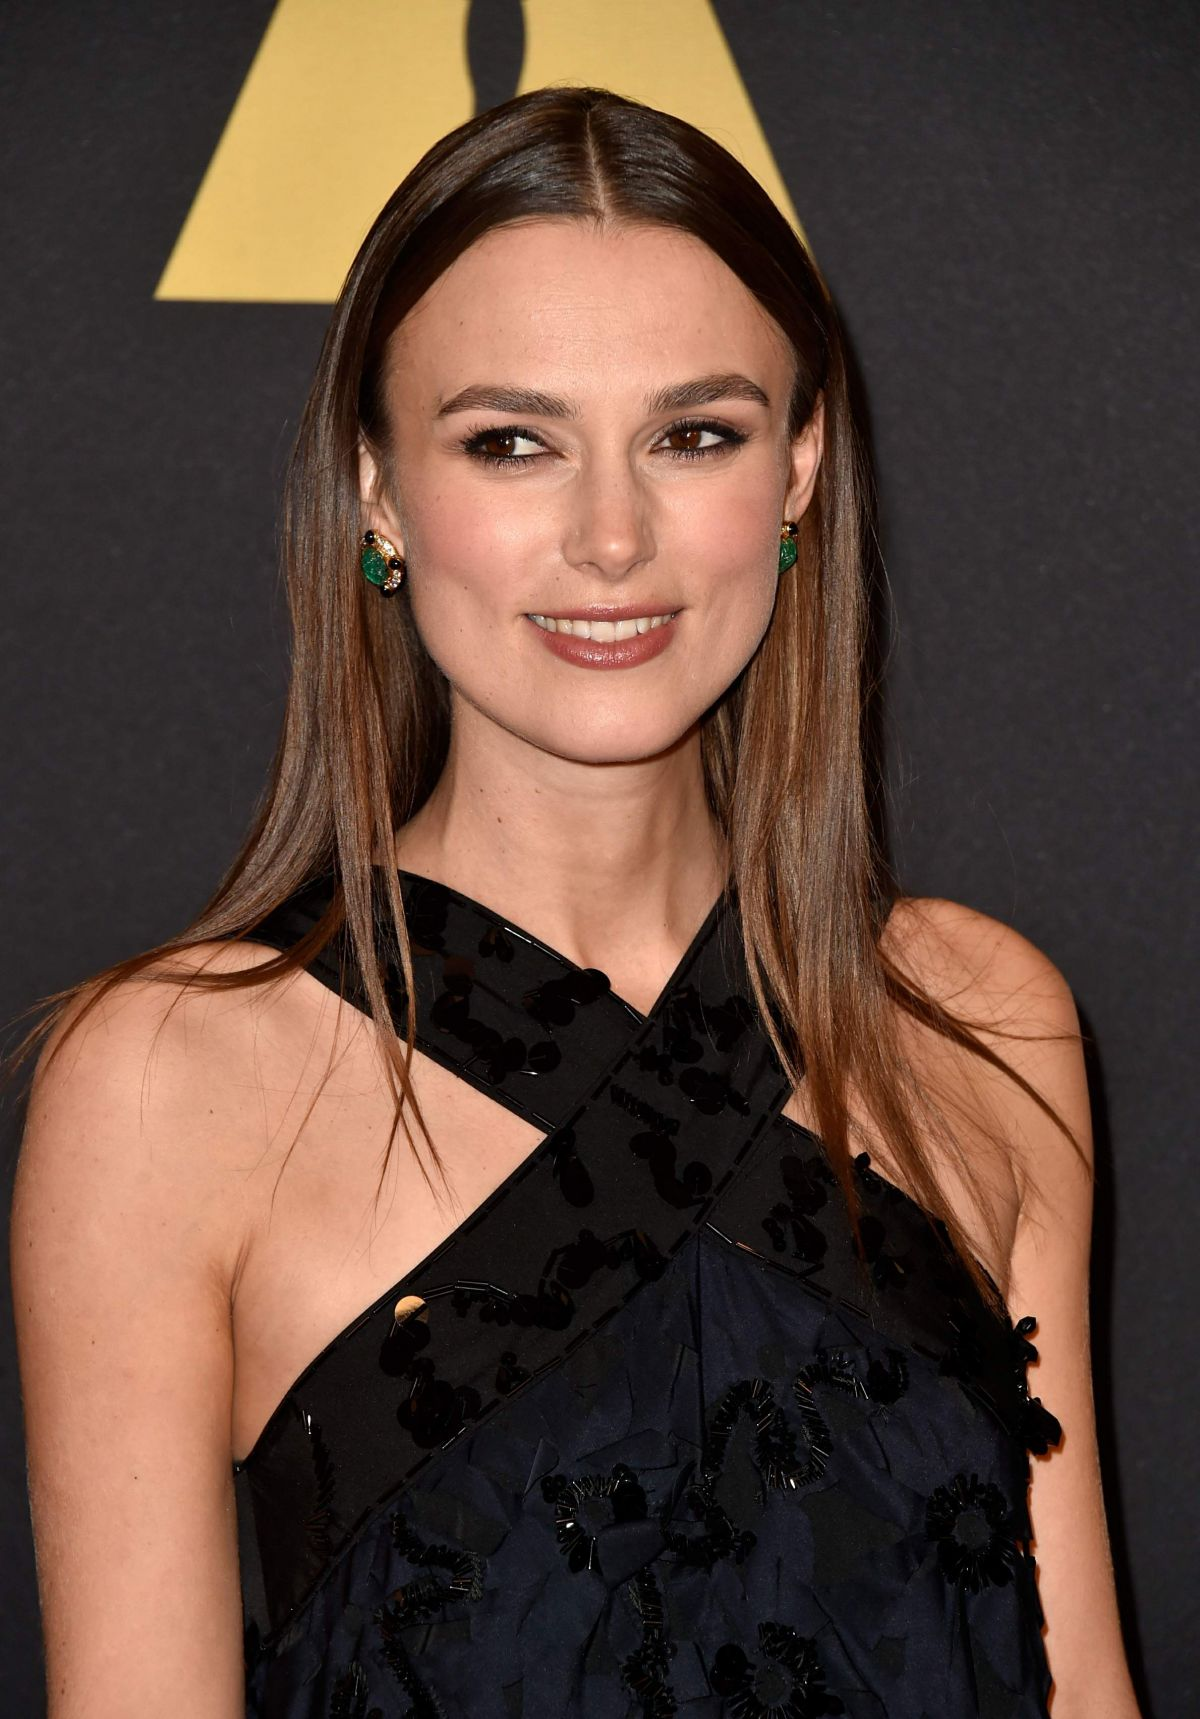 KEIRA KNIGHTLEY at AMPAS 2014 Governor's Awards in ... Keira Knightley